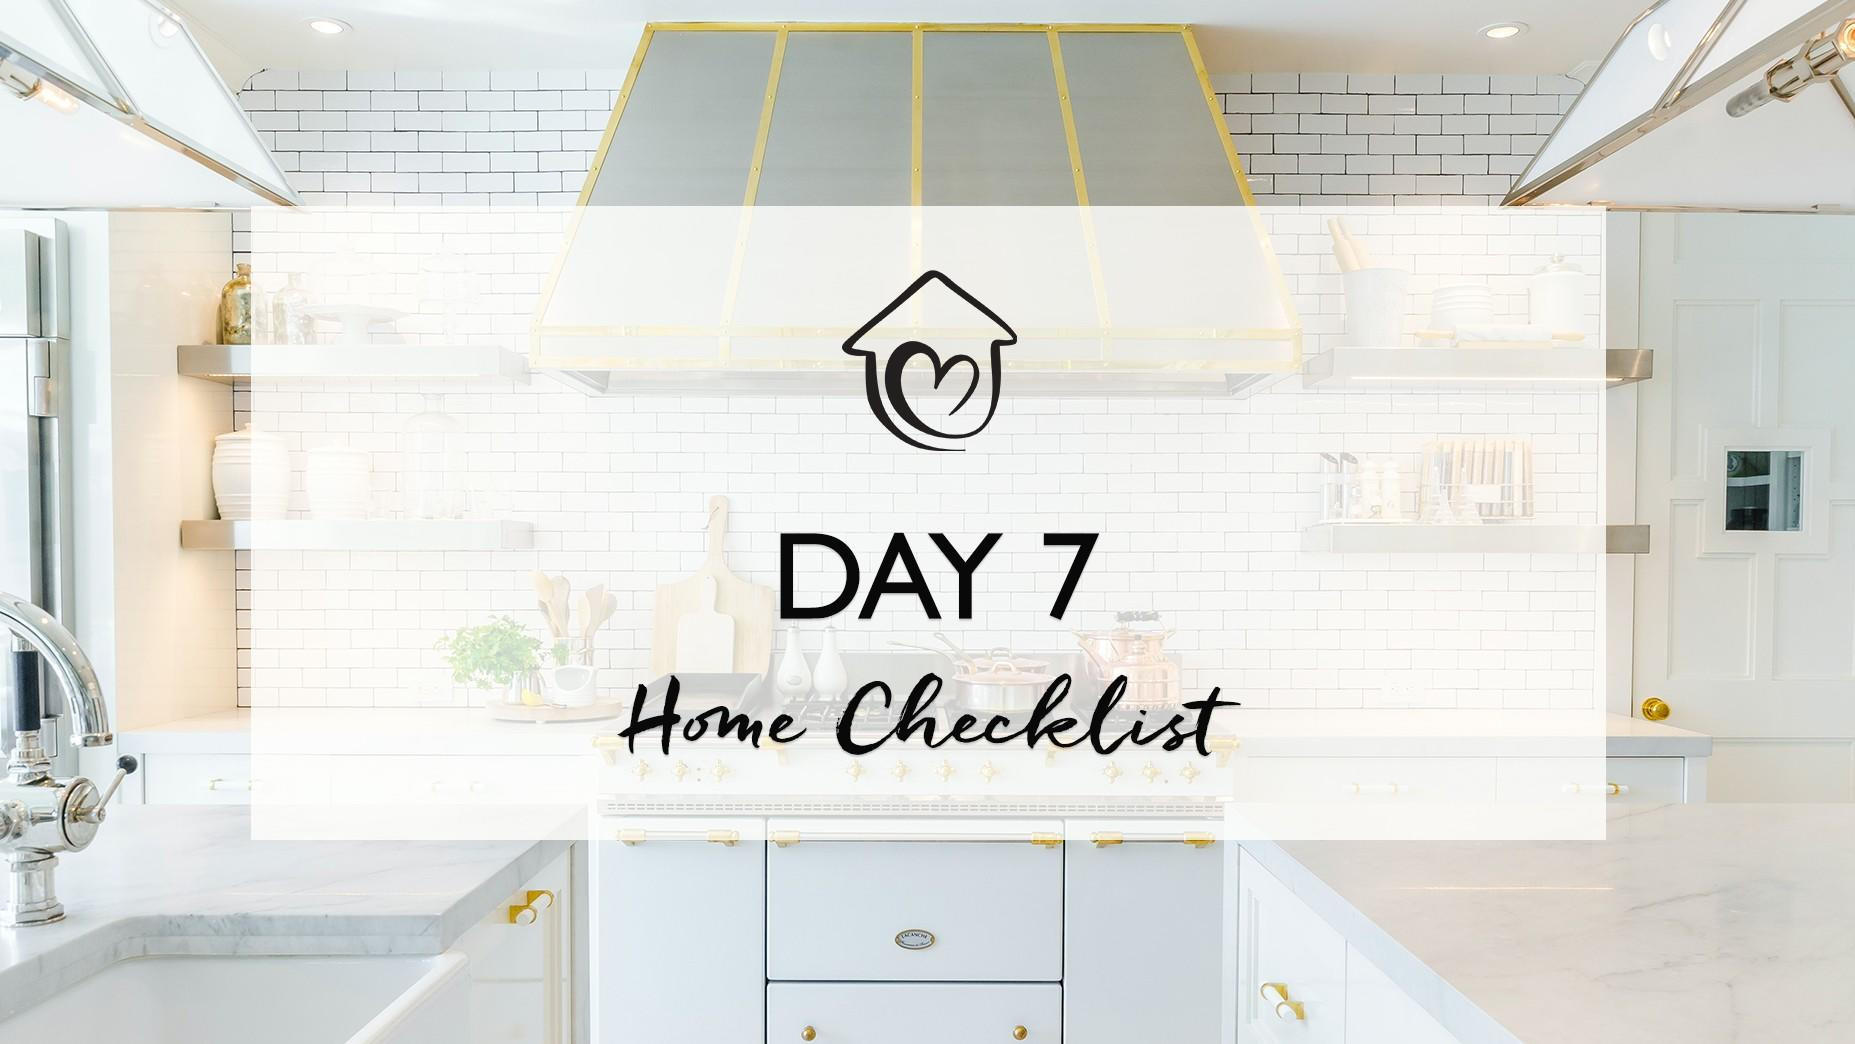 Day 7 - Home Checklist